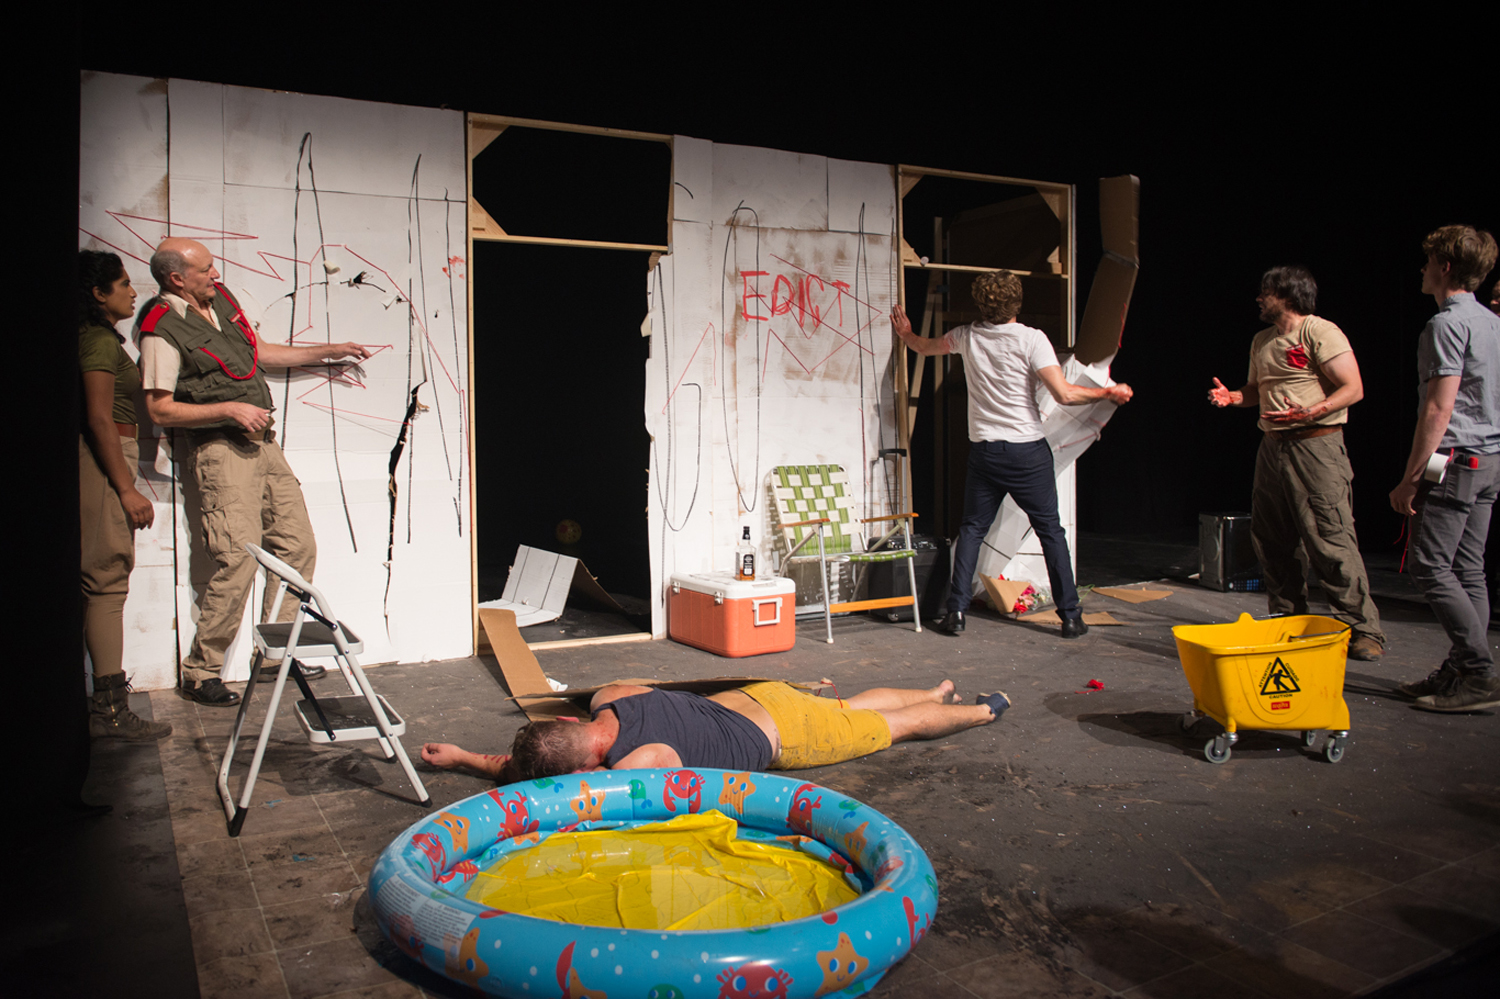 After he drags on his dead son, Kreon rips the cardboard off the walls. Photo by Dahlia Katz.